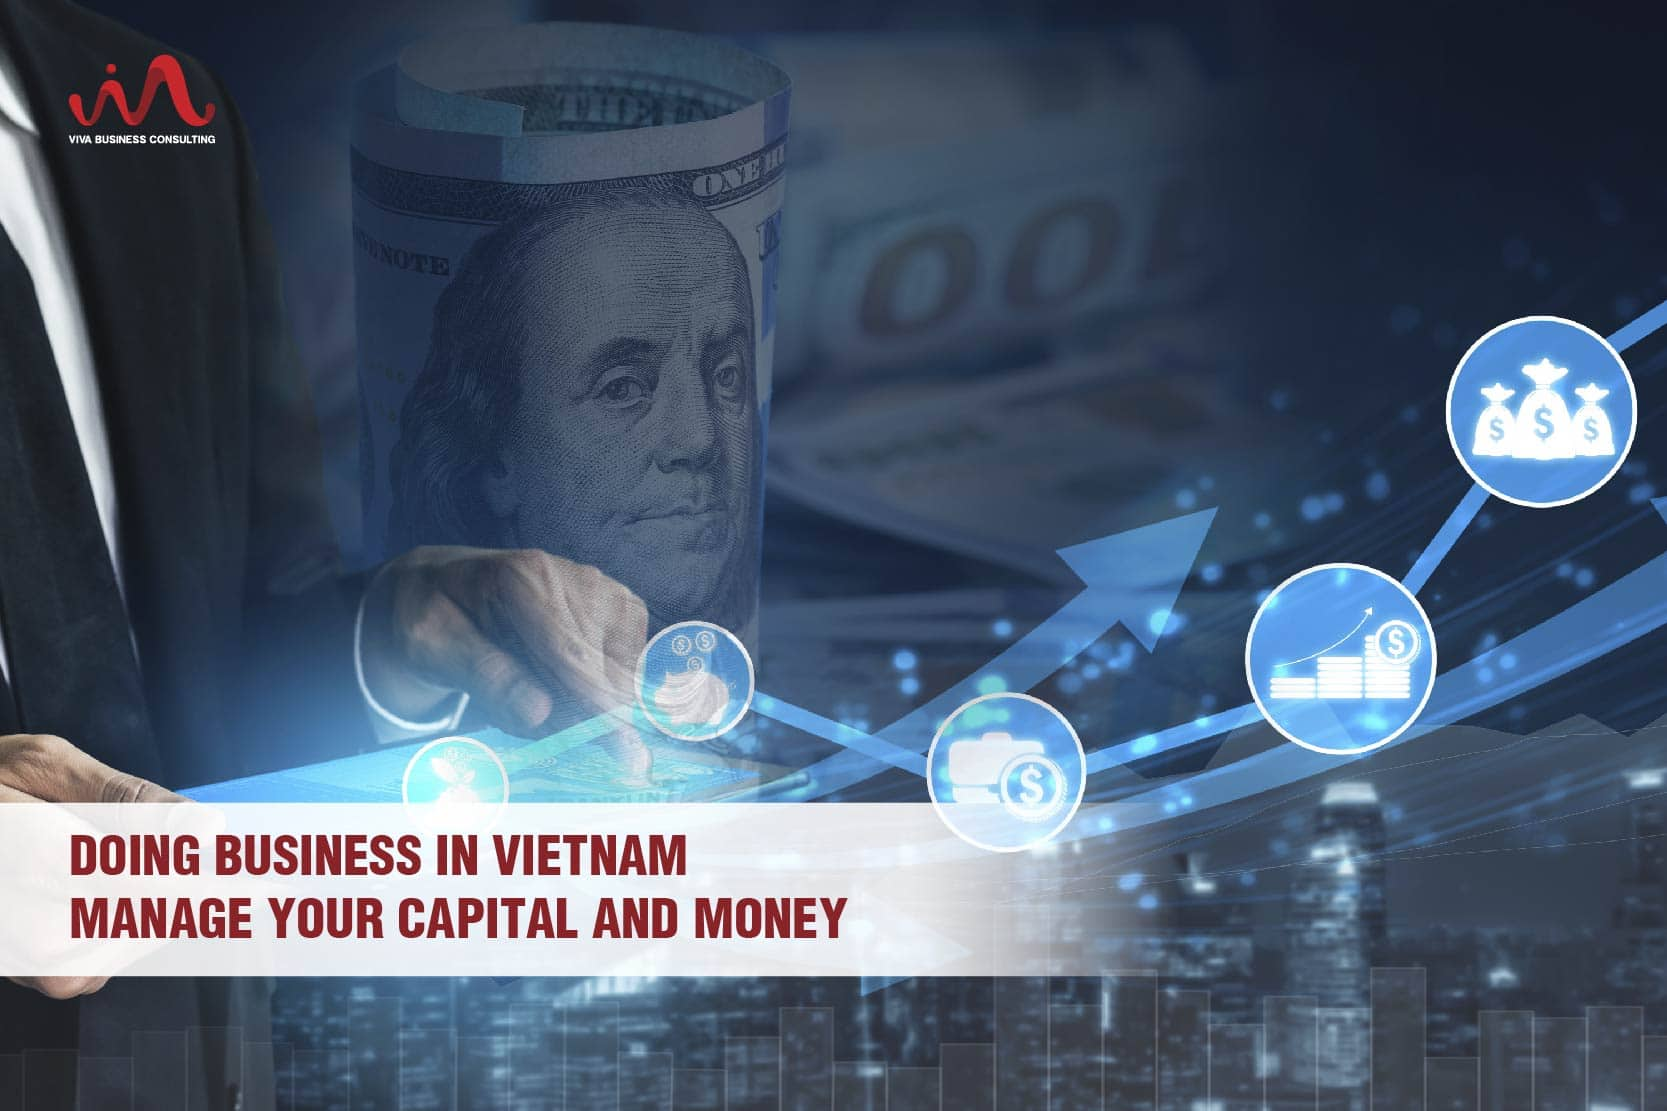 Manage Capital And Money | Doing Business In Vietnam